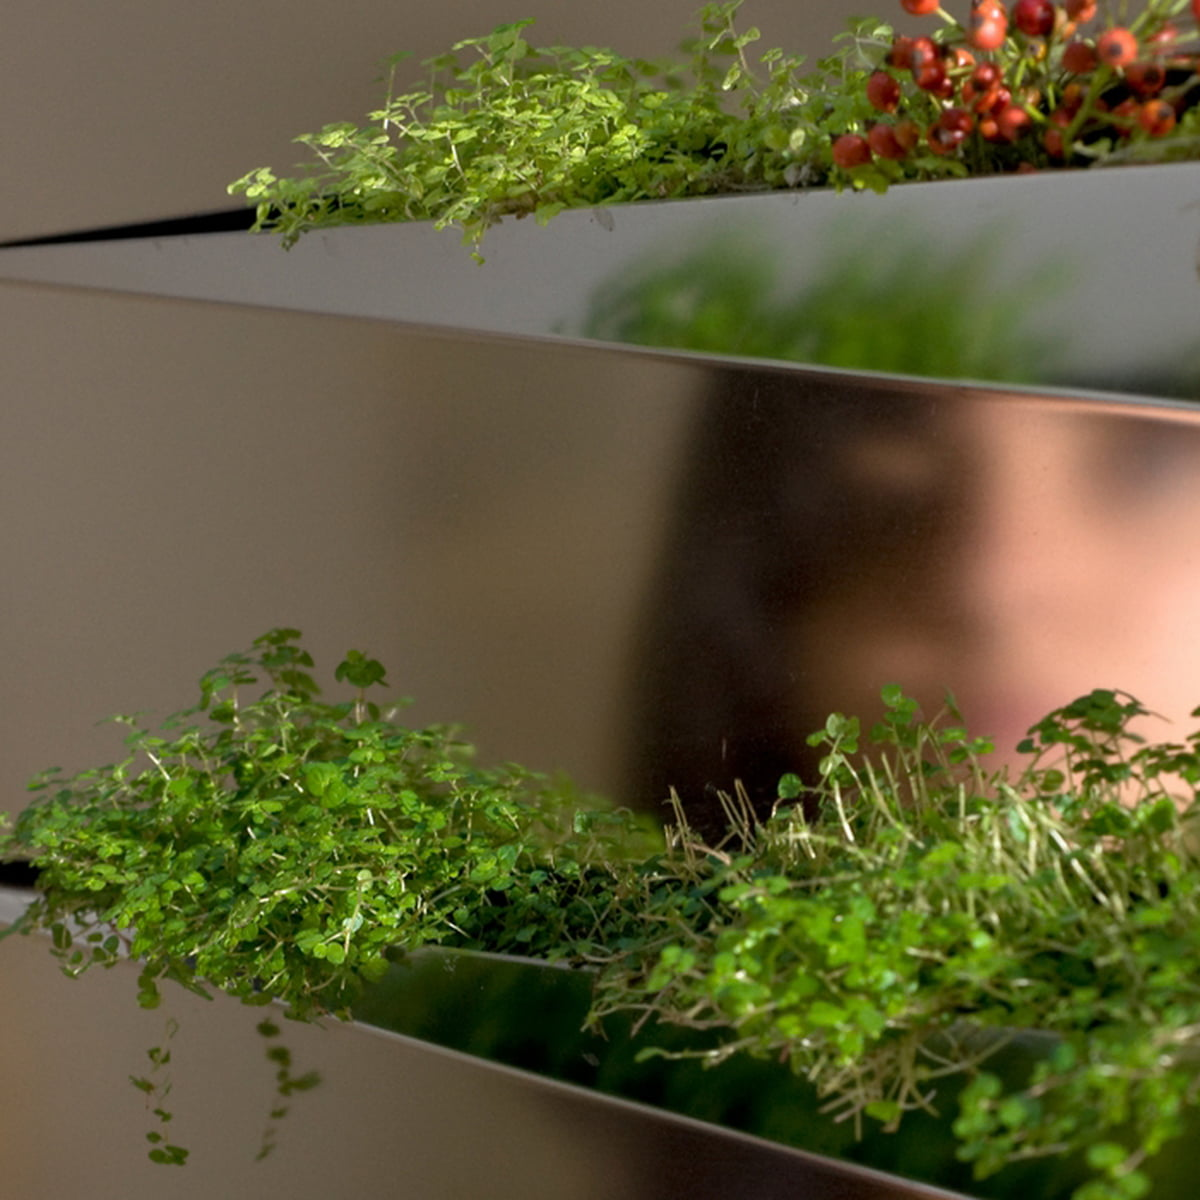 Edition compagnie miroir en herbe planter for Miroir application android